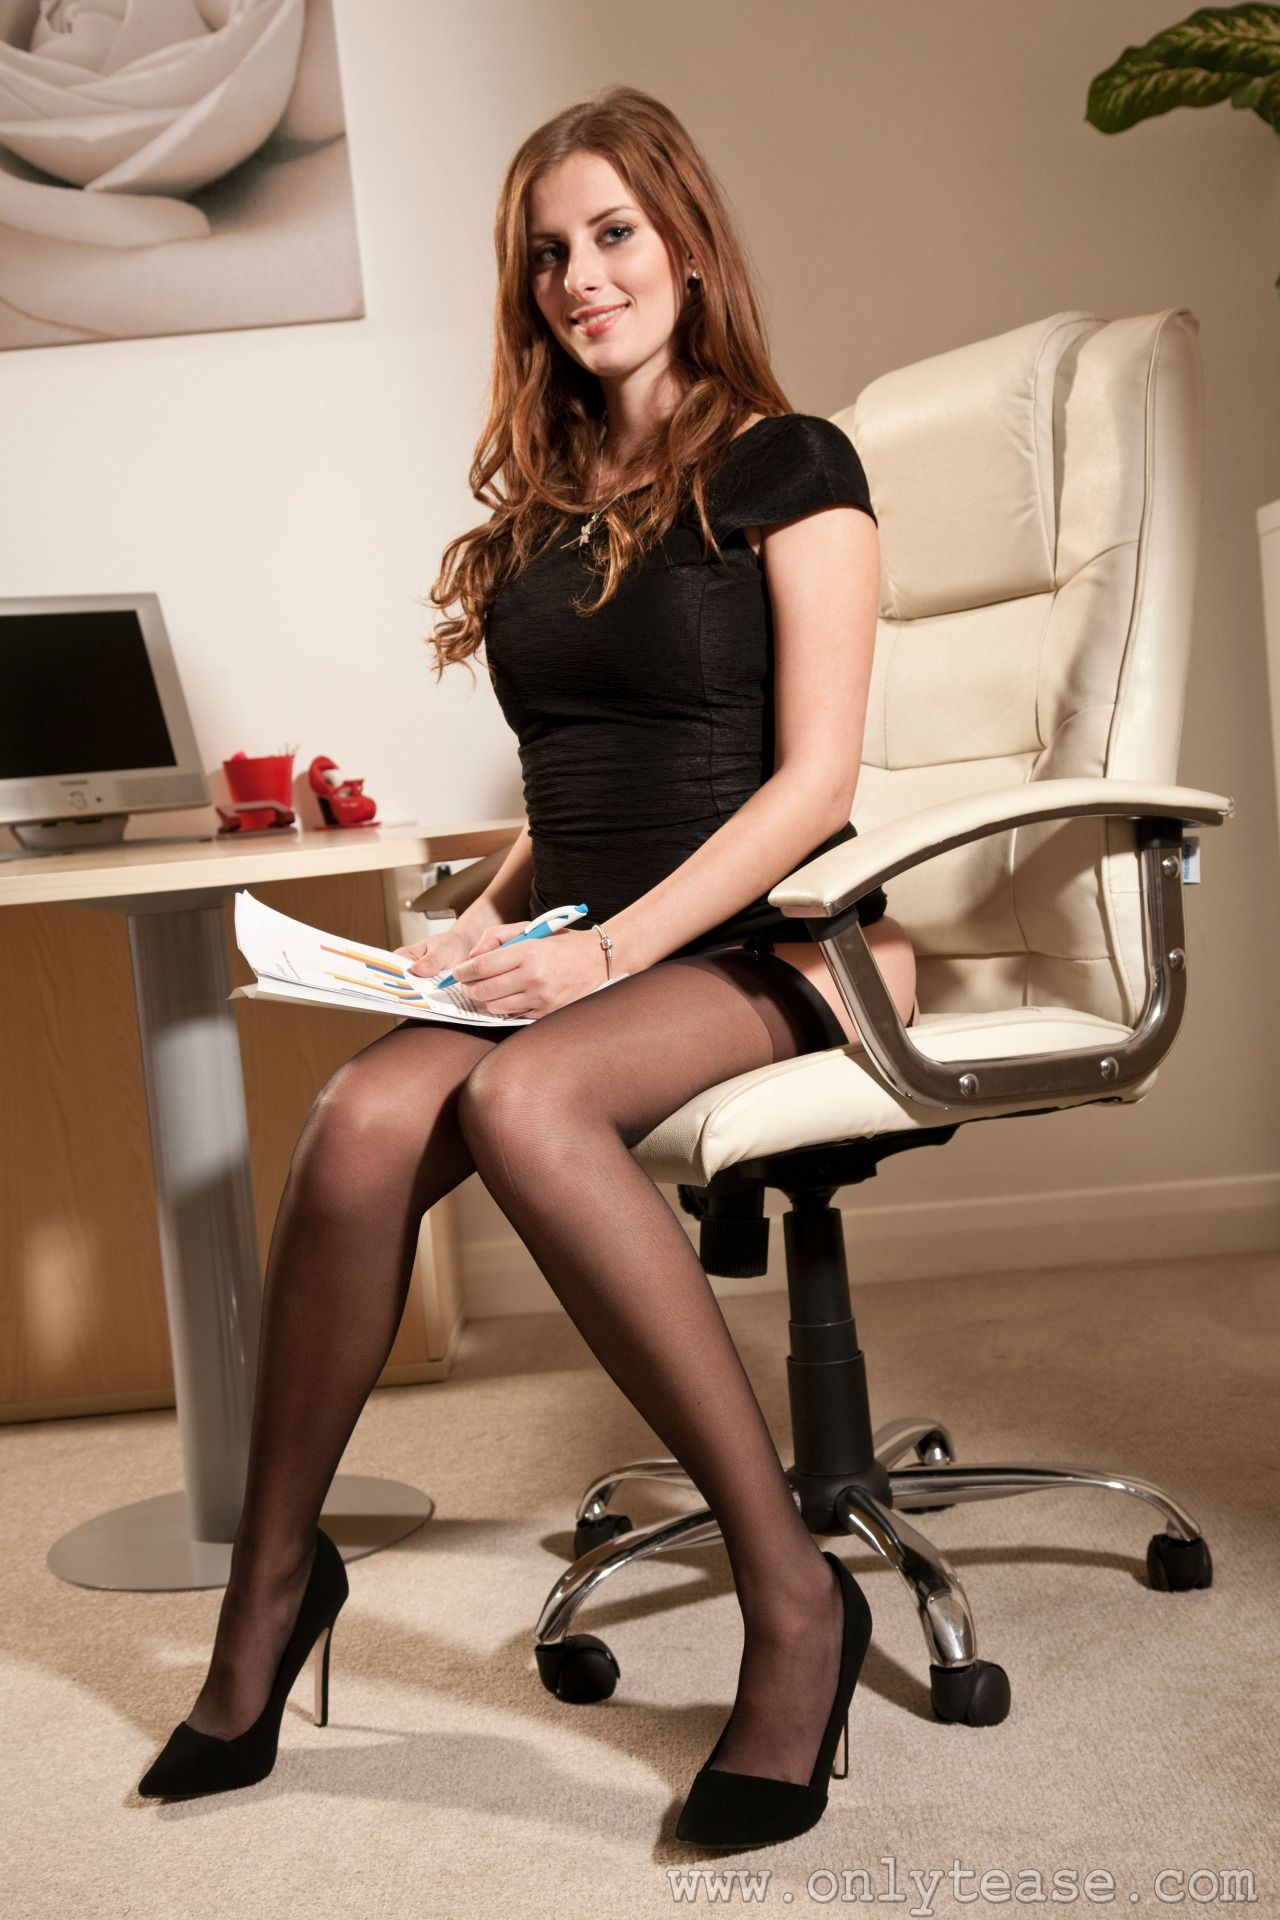 be gentle to your sissy : photo | my secretary dream | pinterest